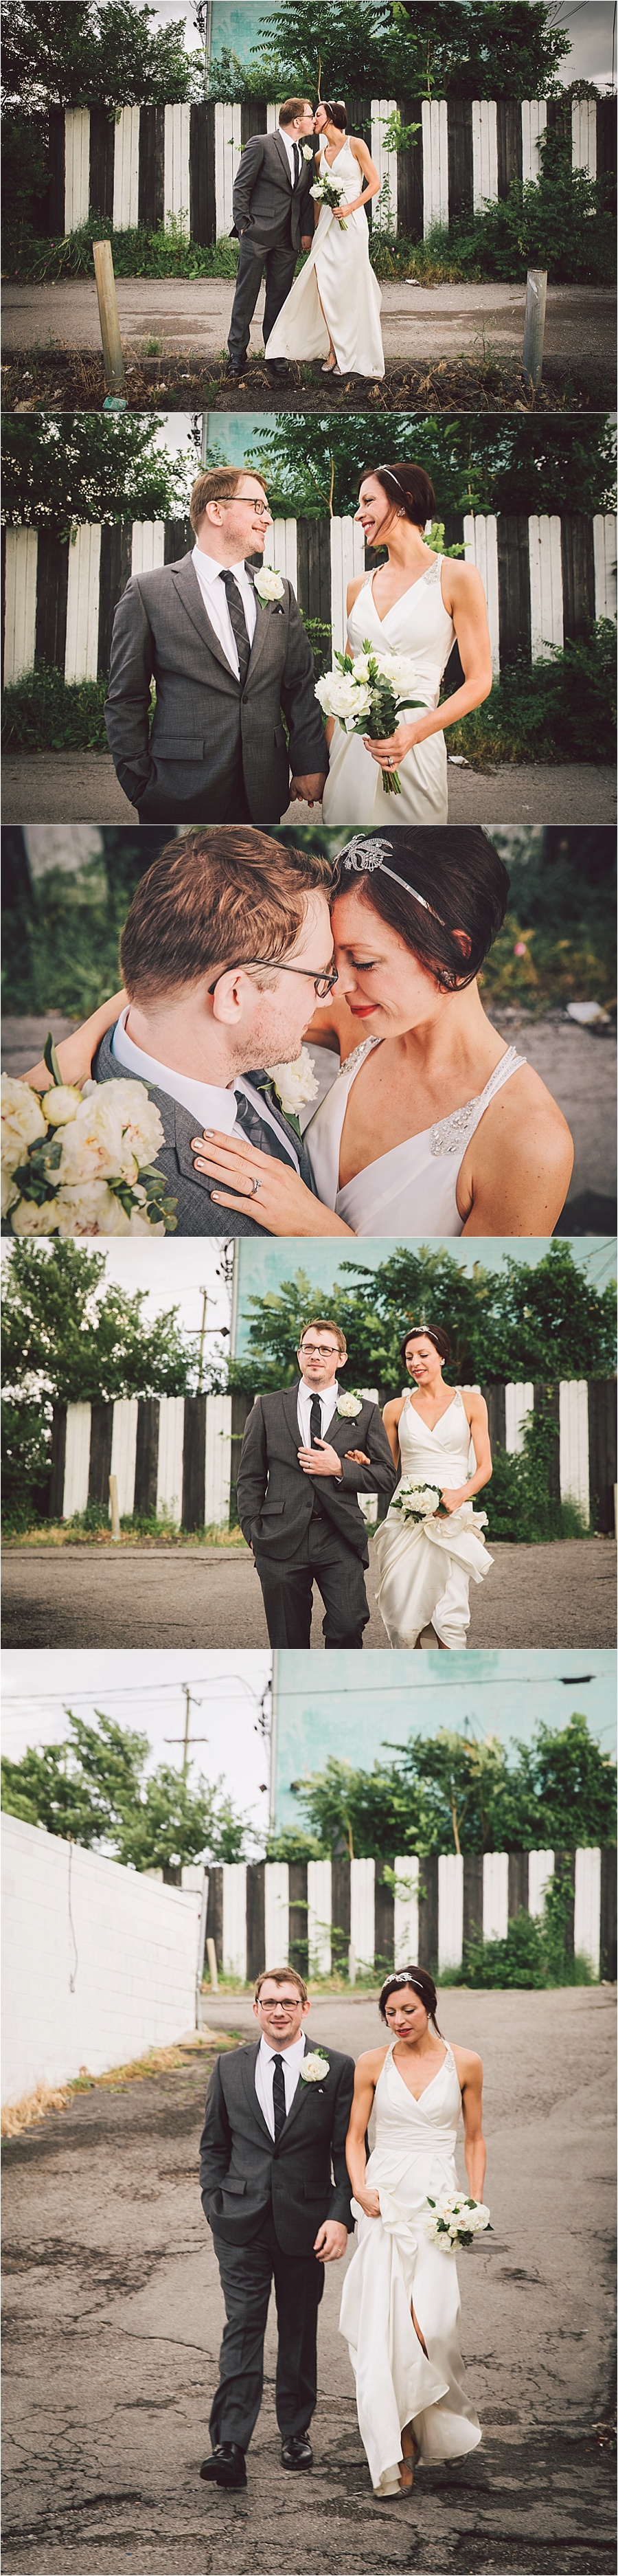 nashville-indie-wedding-photographer